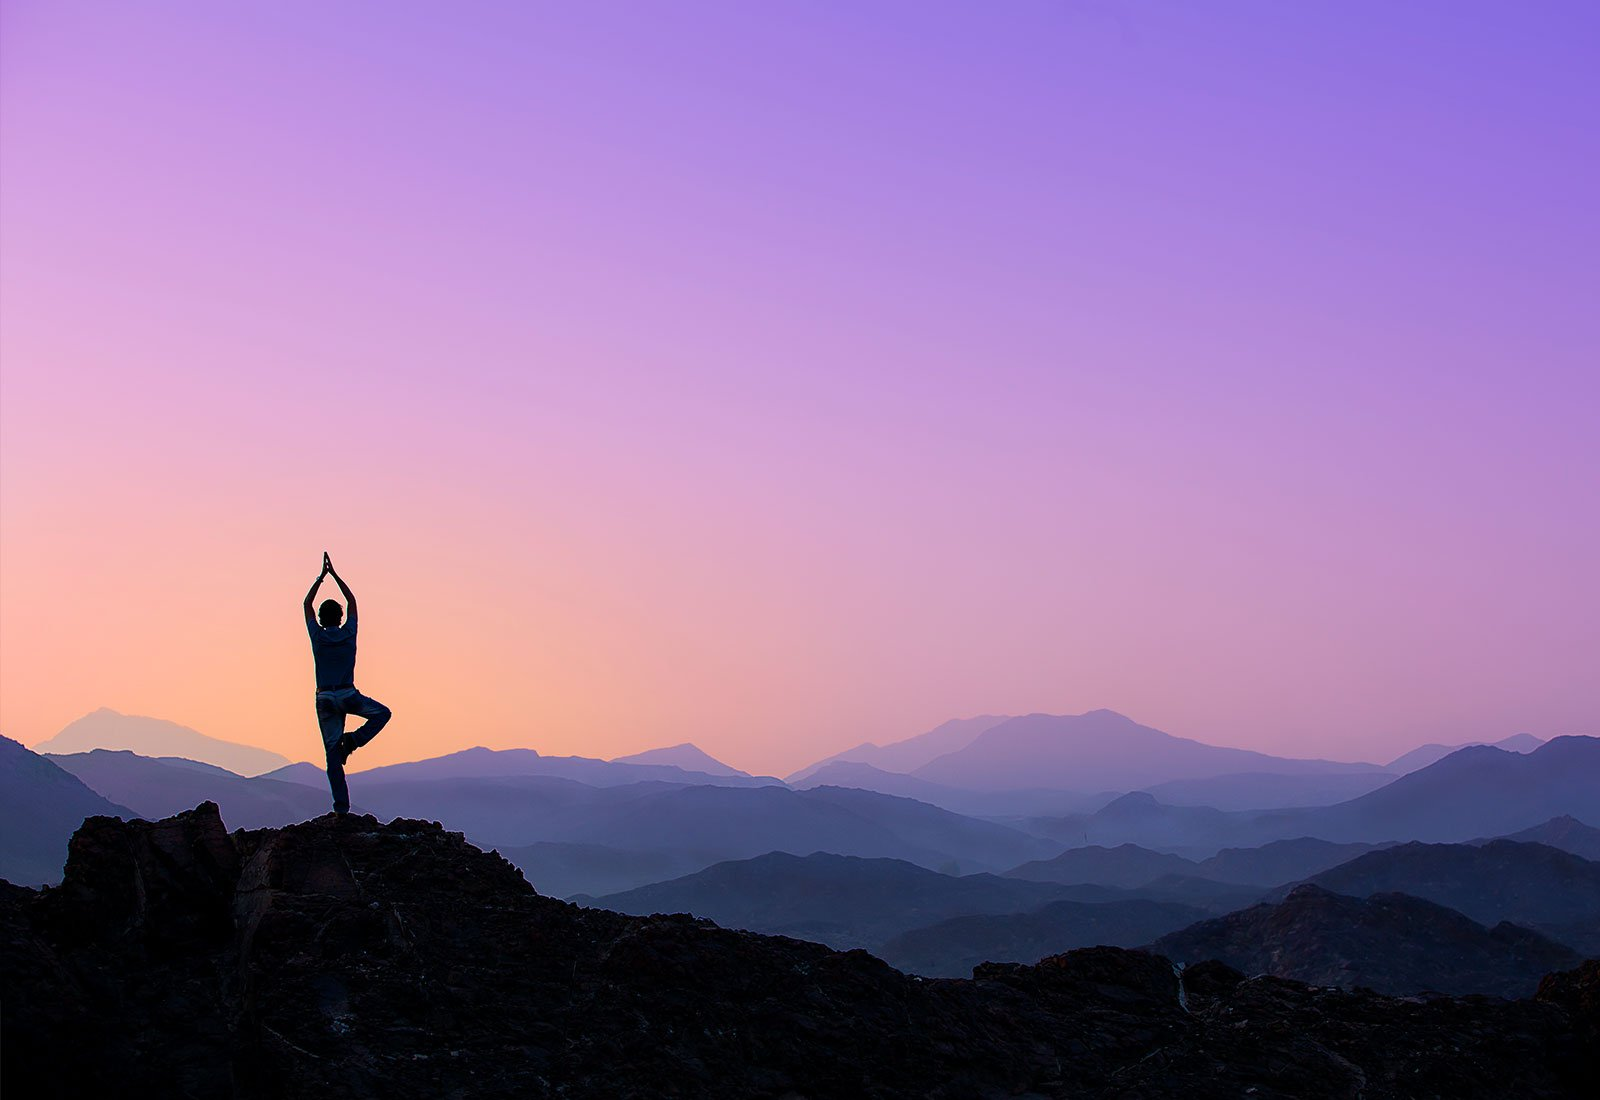 A person doing yoga on a mountain hill